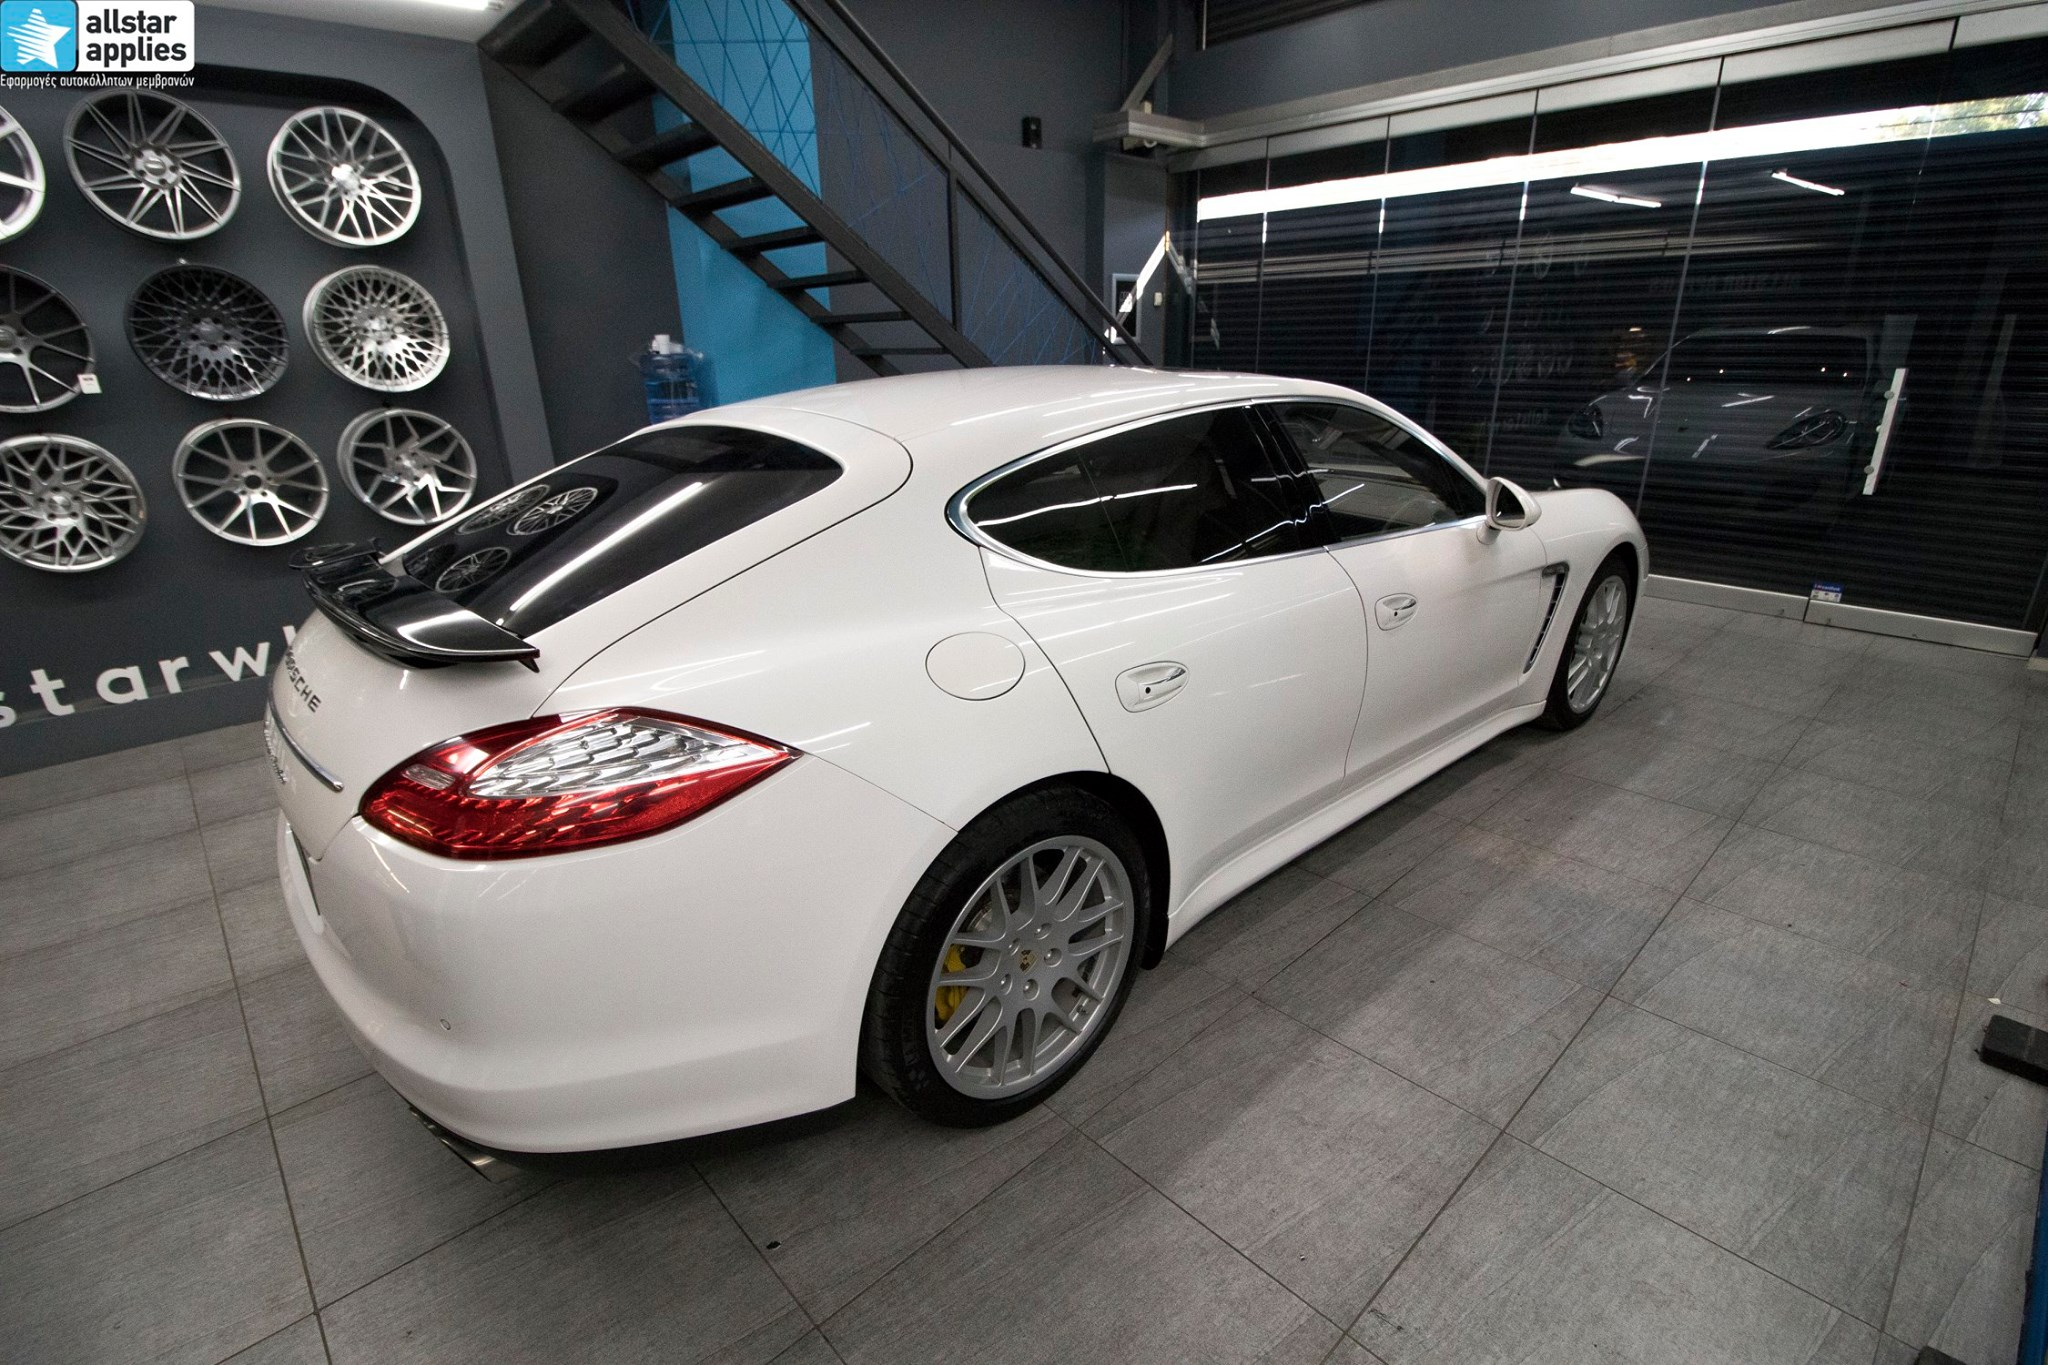 Porsche Panamera - Paint Protection Film (9)